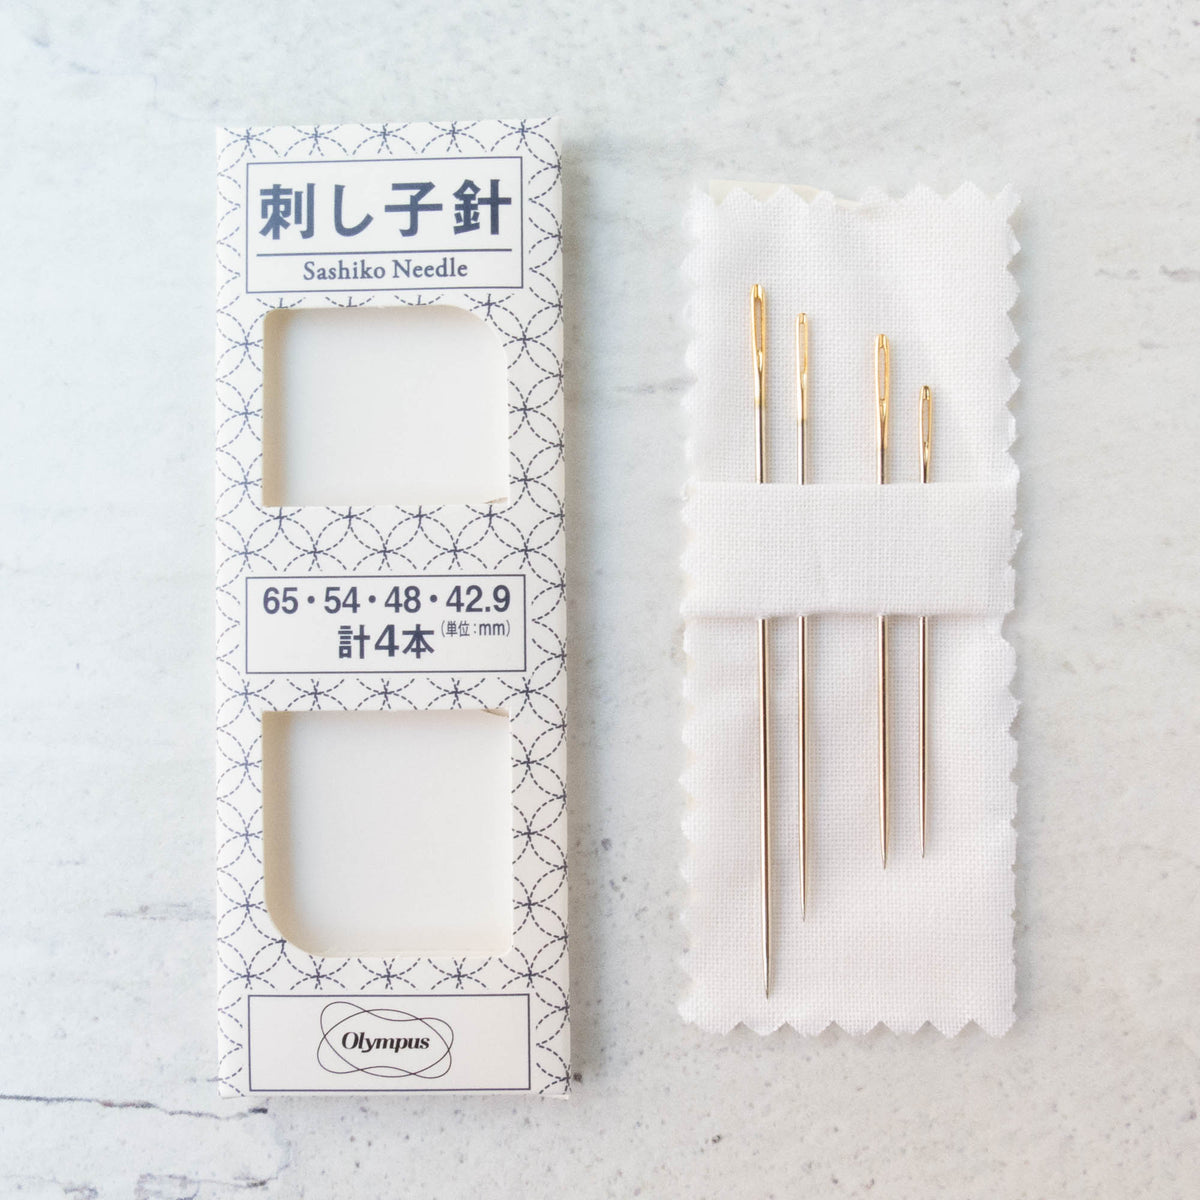 Olympus Gold Eye Sashiko Needles (4 pack)